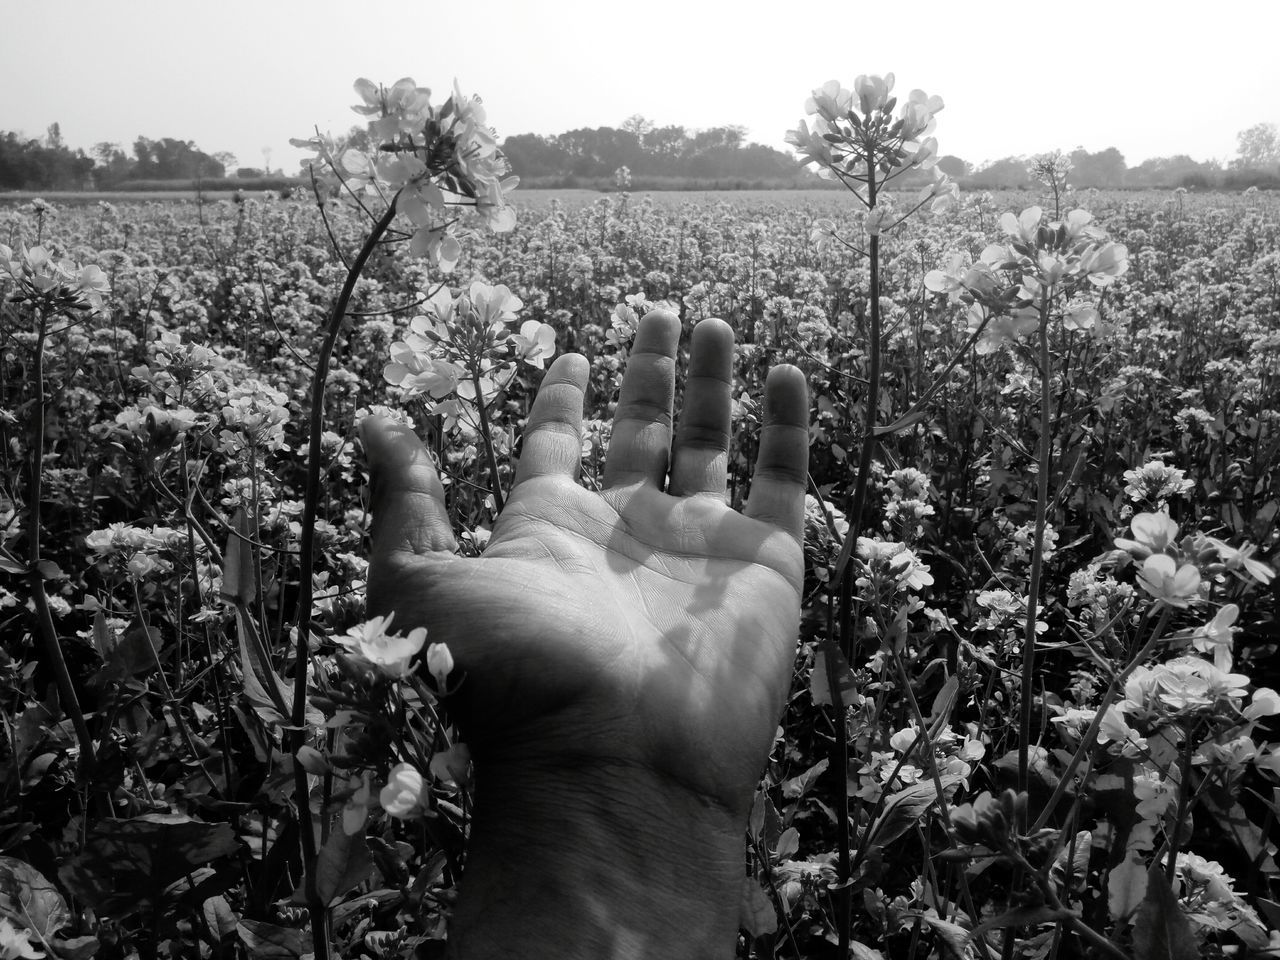 Cropped Hand Of Man Amidst Flower On Field